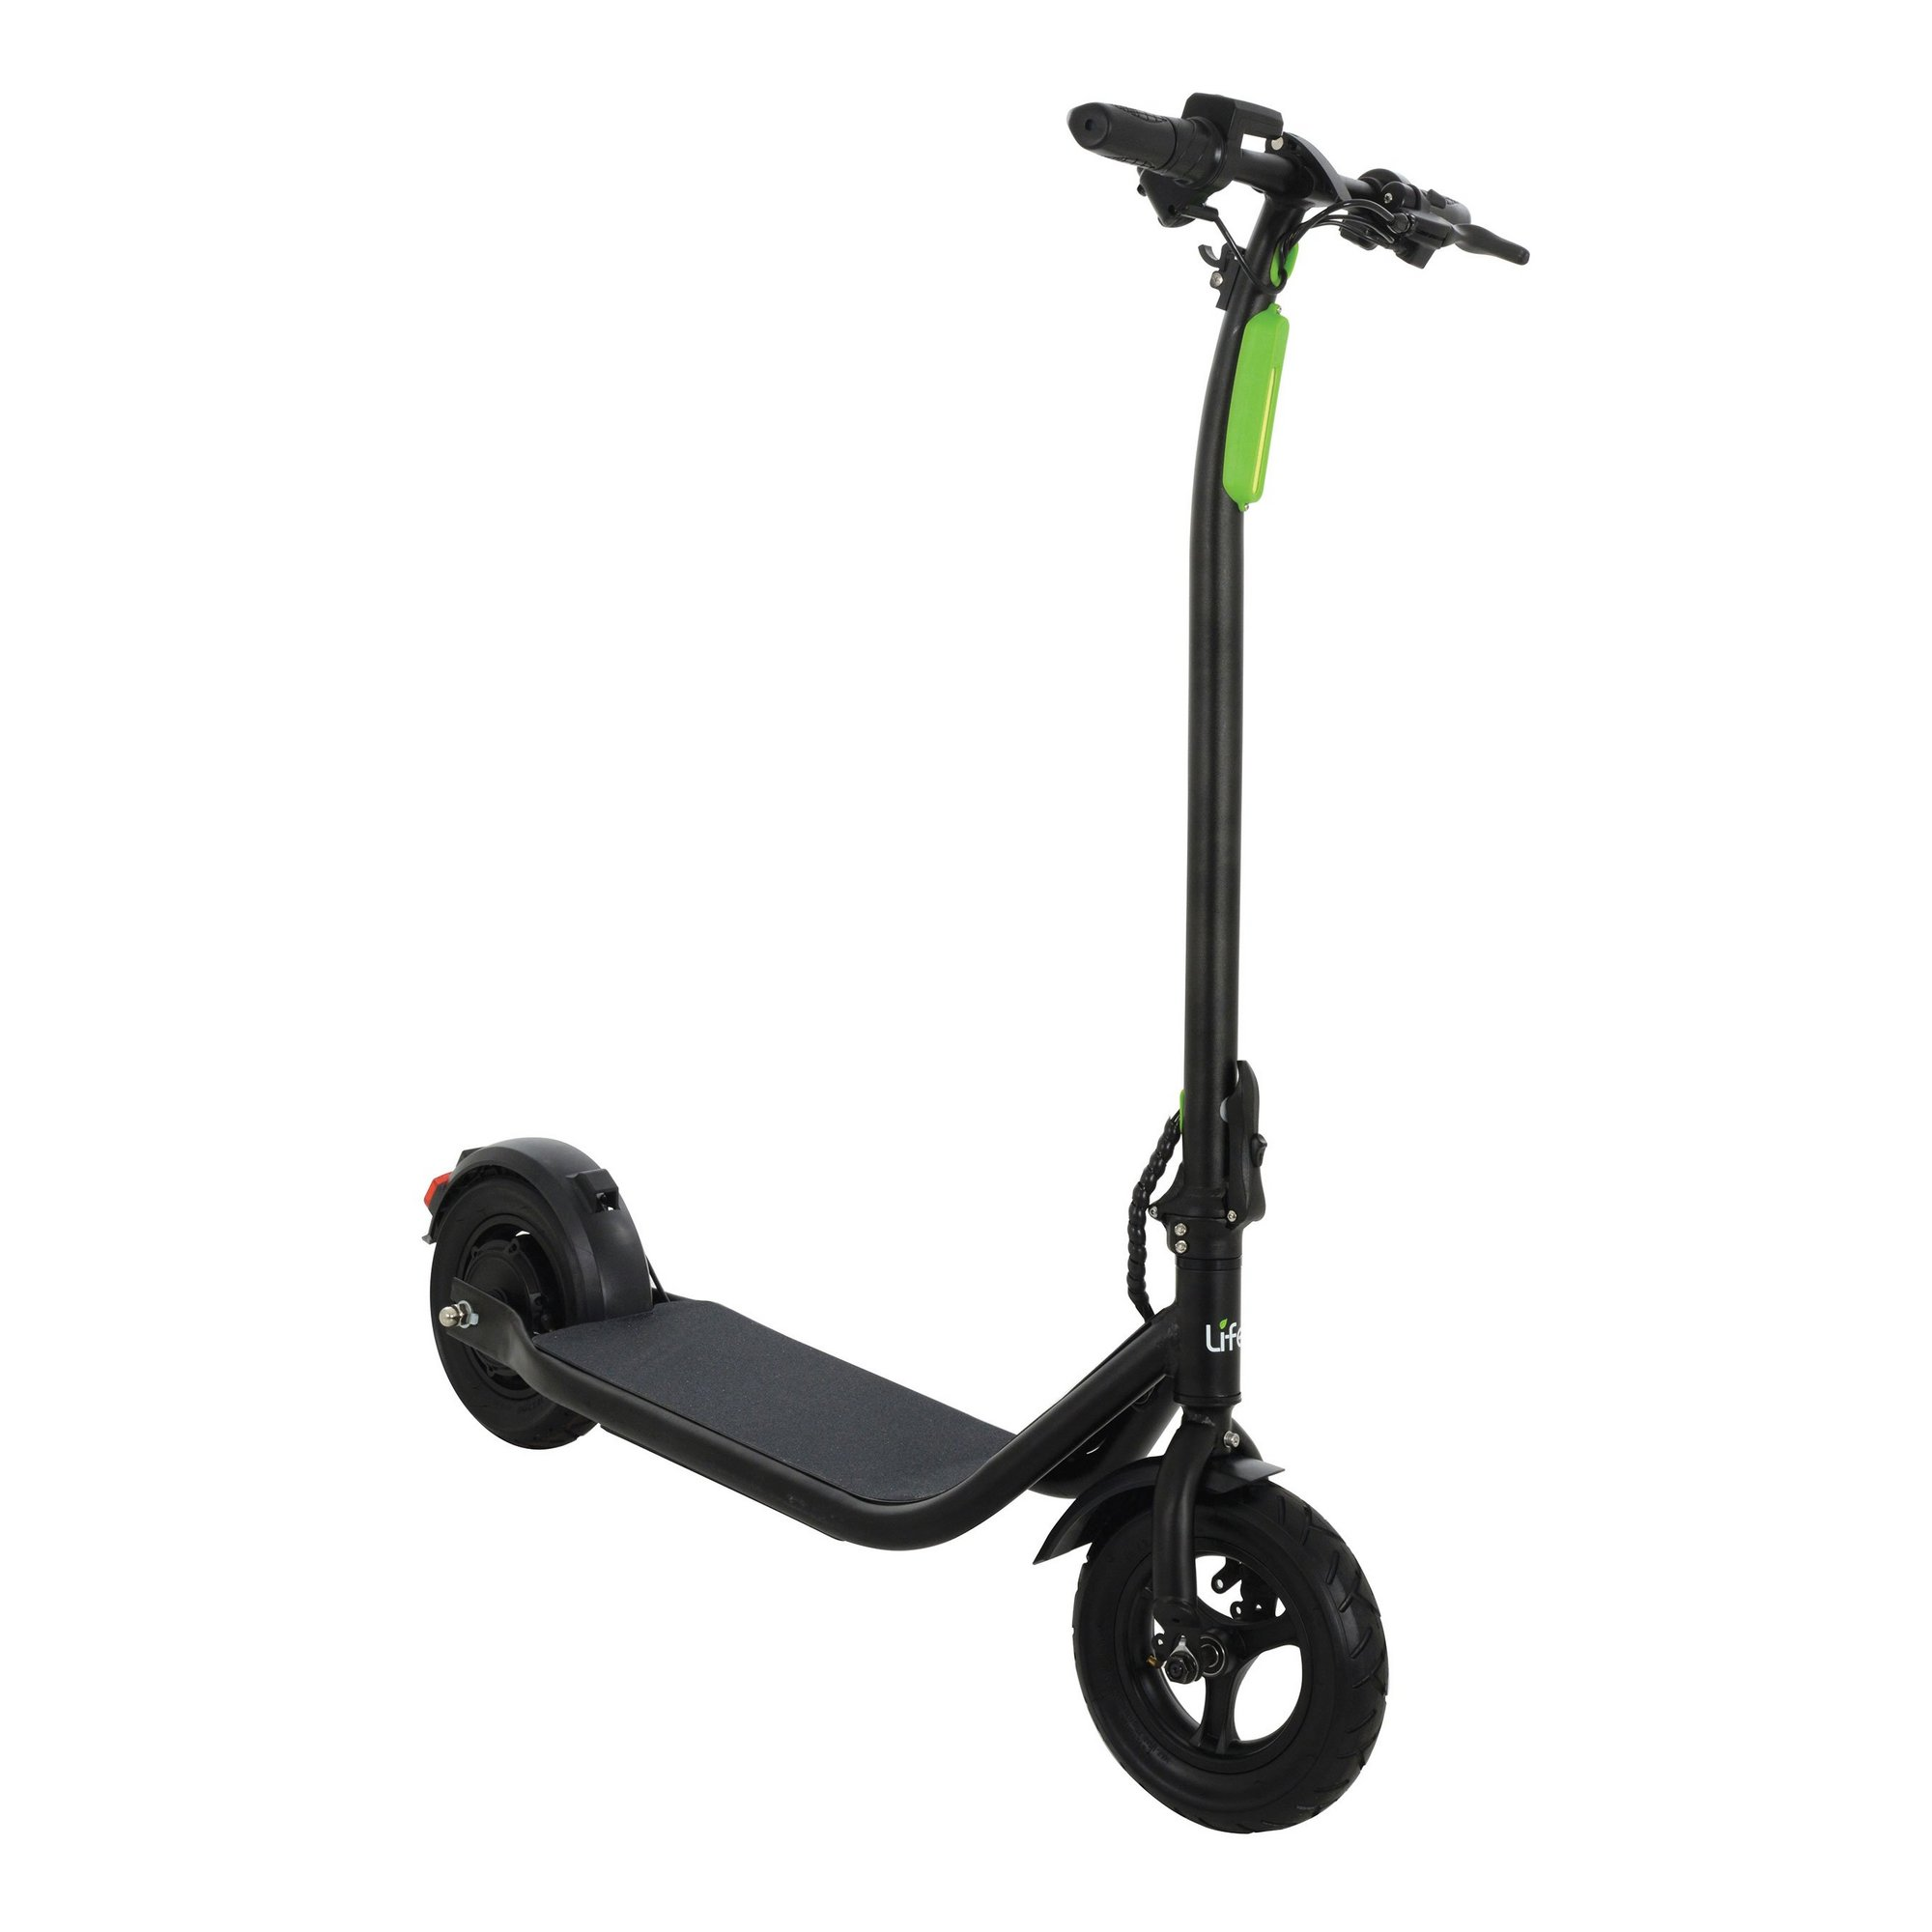 Image of Li-Fe - 350 AIR Lithium Scooter